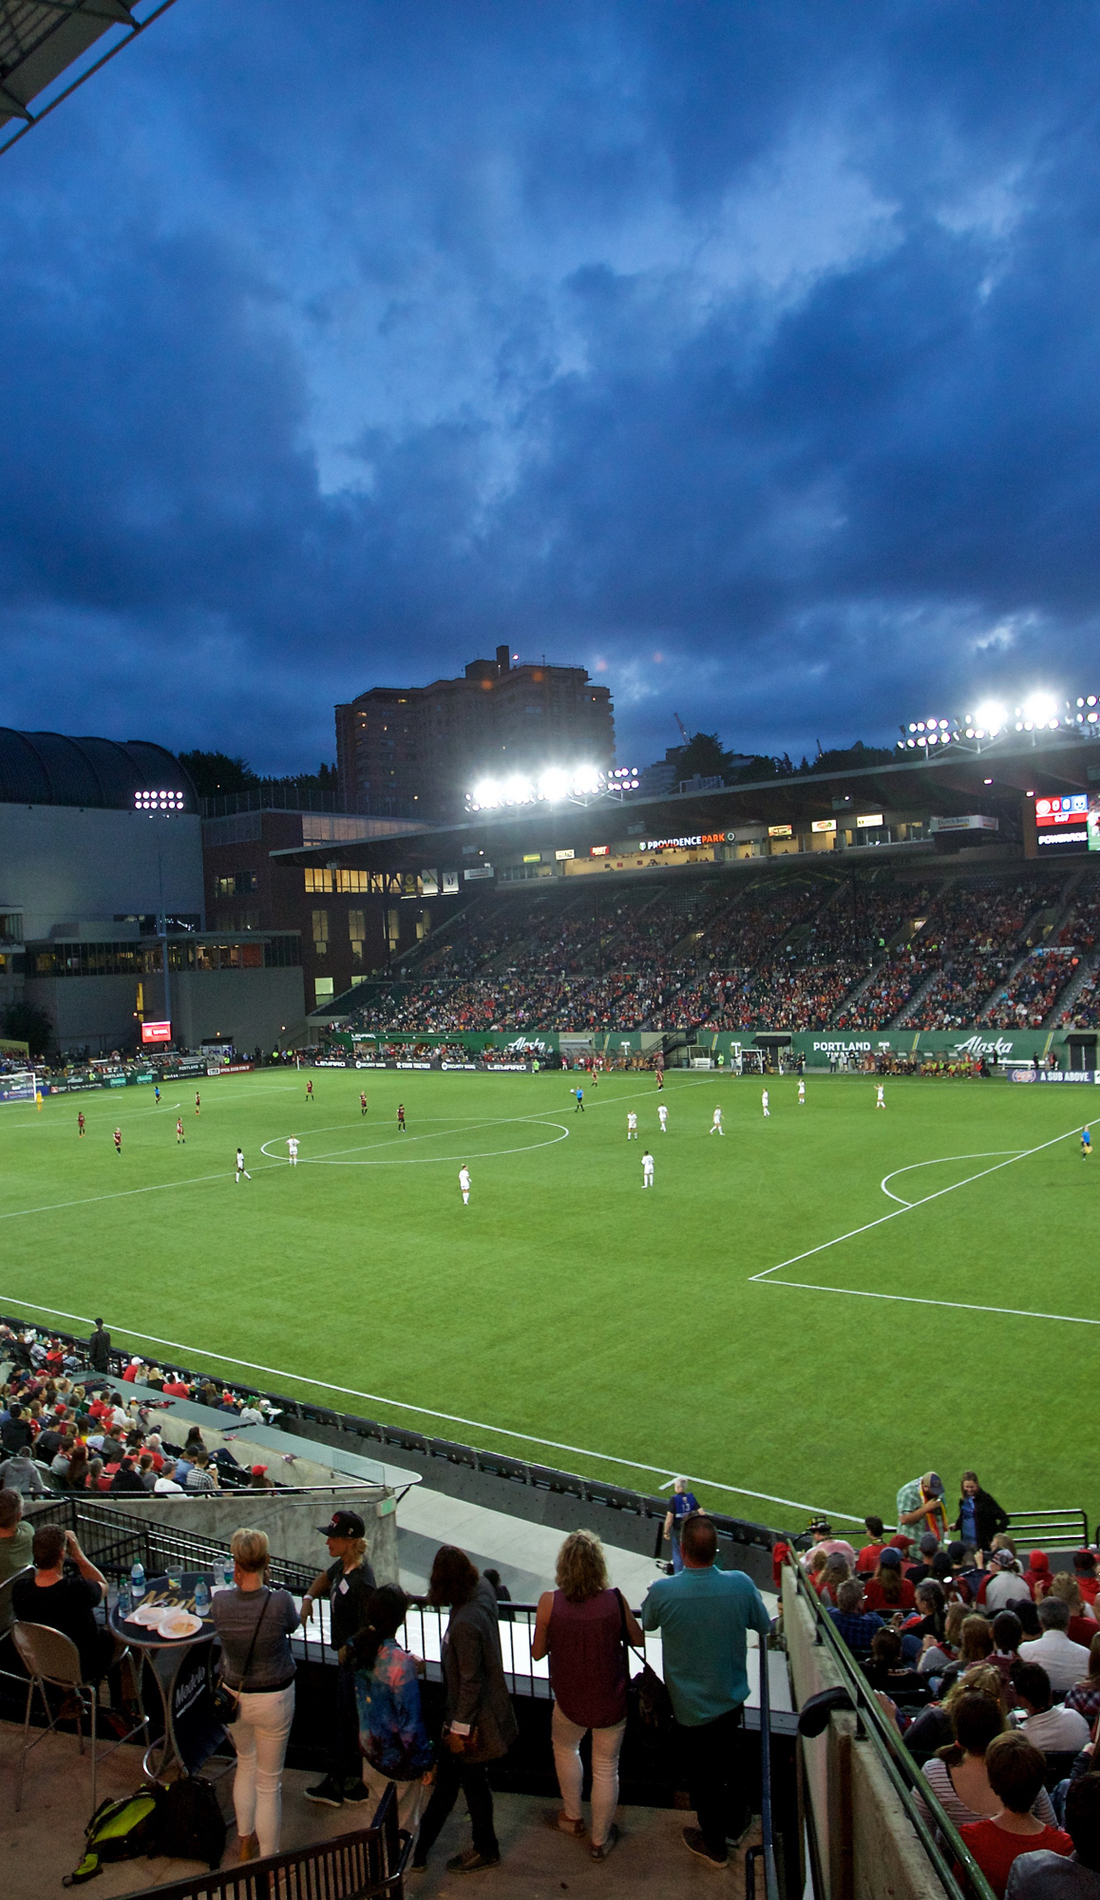 A Portland Thorns FC live event